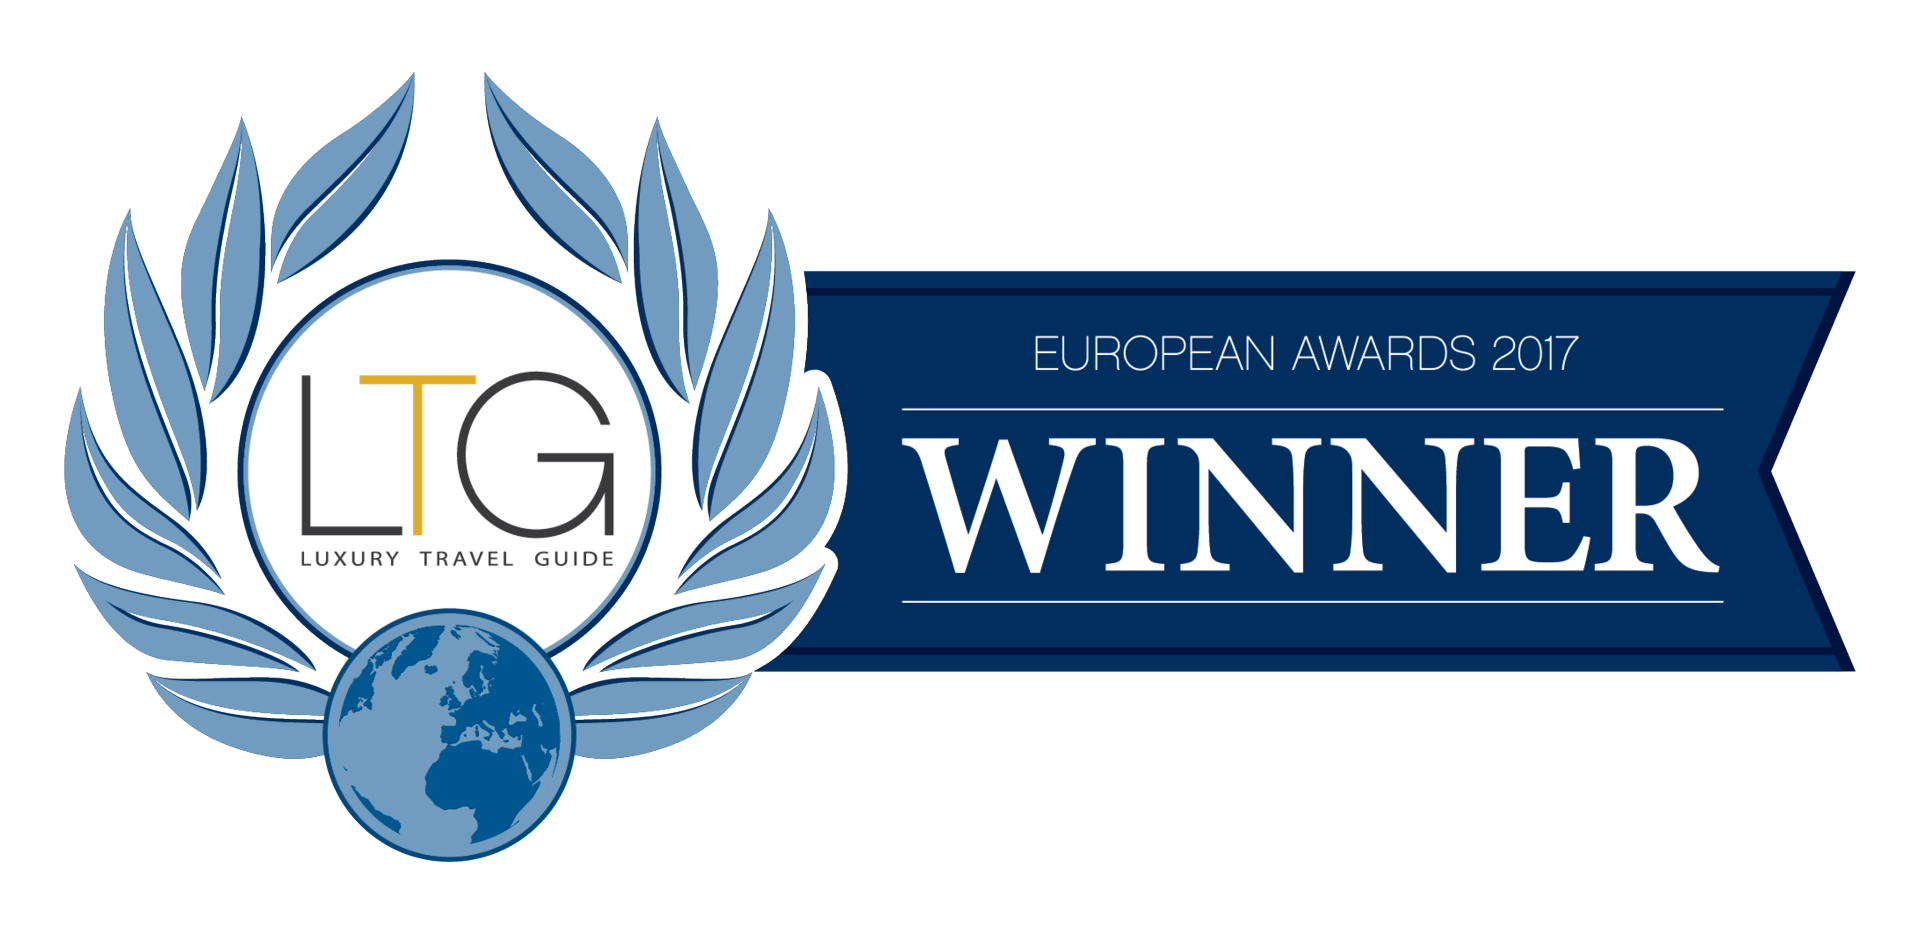 Logo Award LTG European Awards 2017